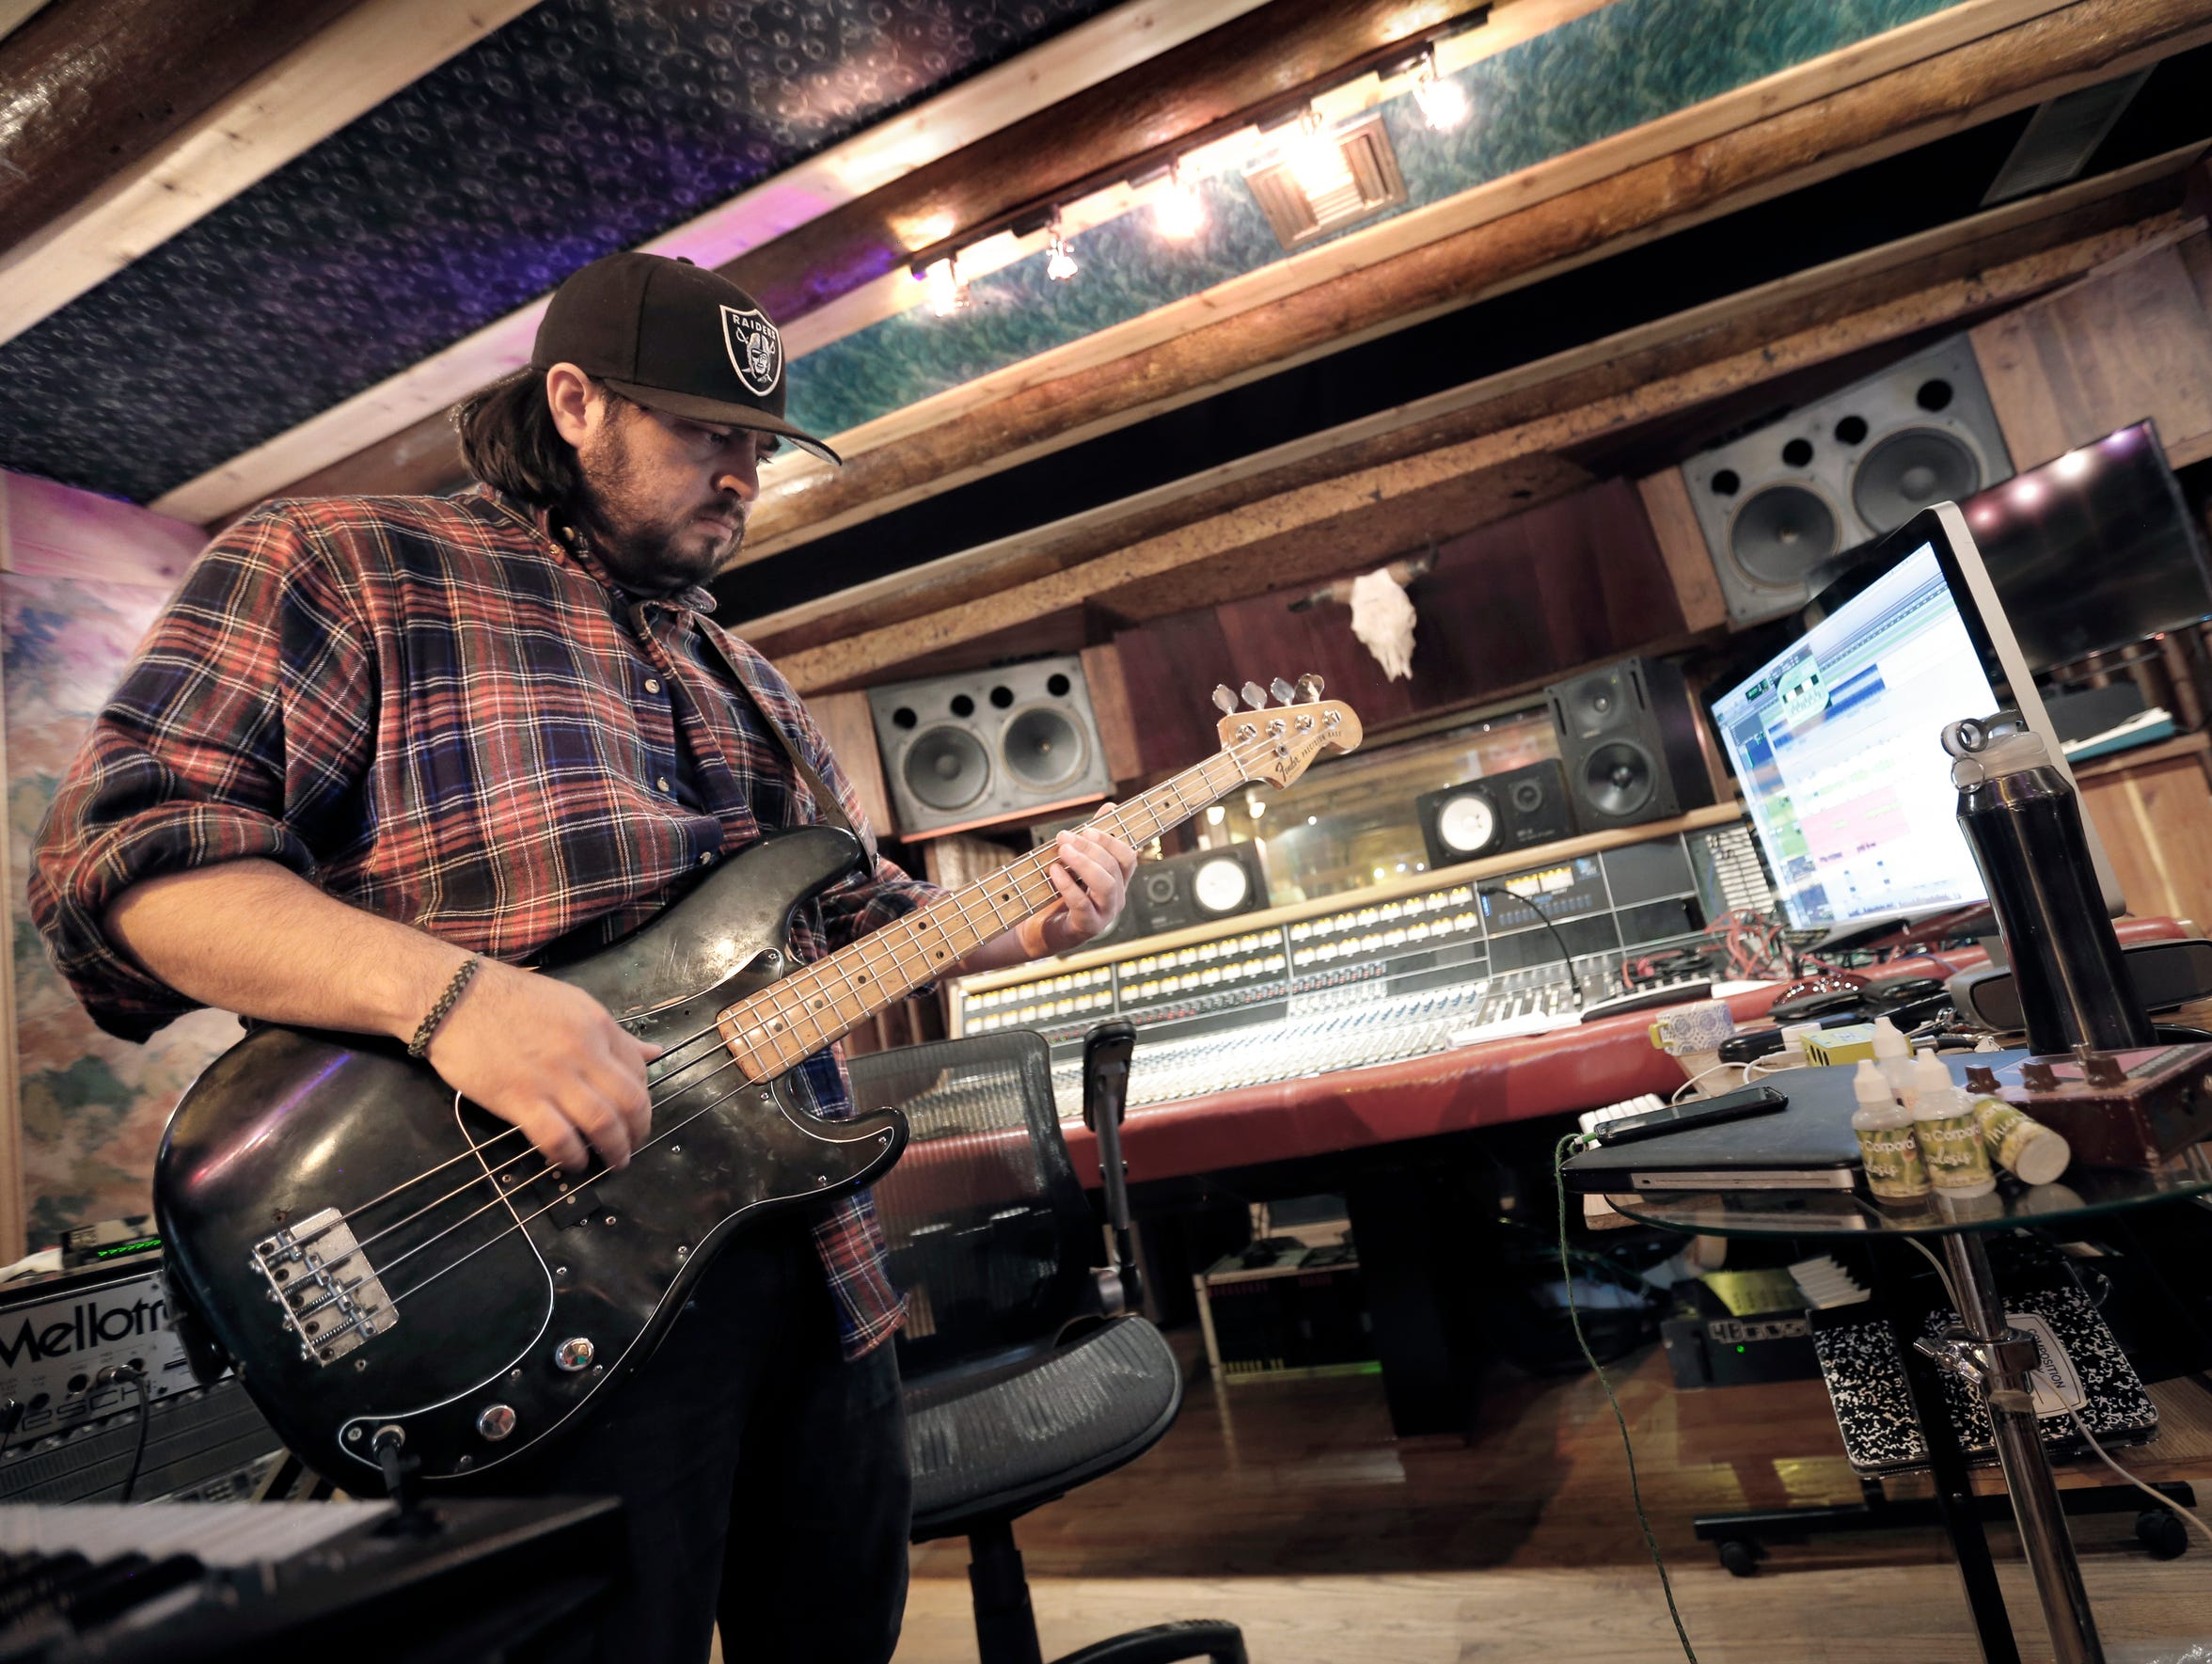 The Chamanas bassist Manuel Carreon records the band's